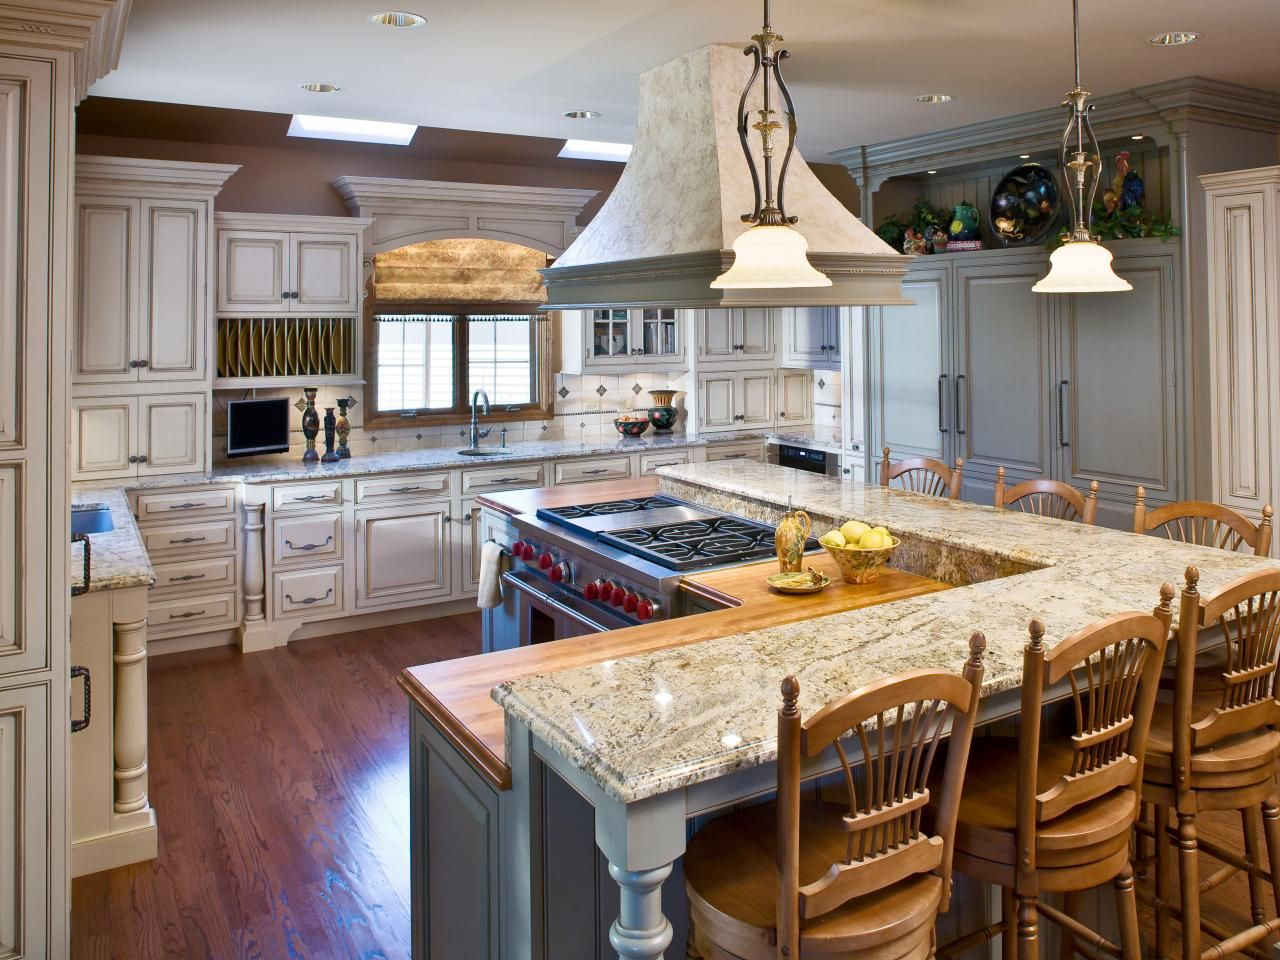 Kitchen Ideas Design Styles And Layout Options  Hgtv Kitchen Simple Kitchen Design With Island Layout Inspiration